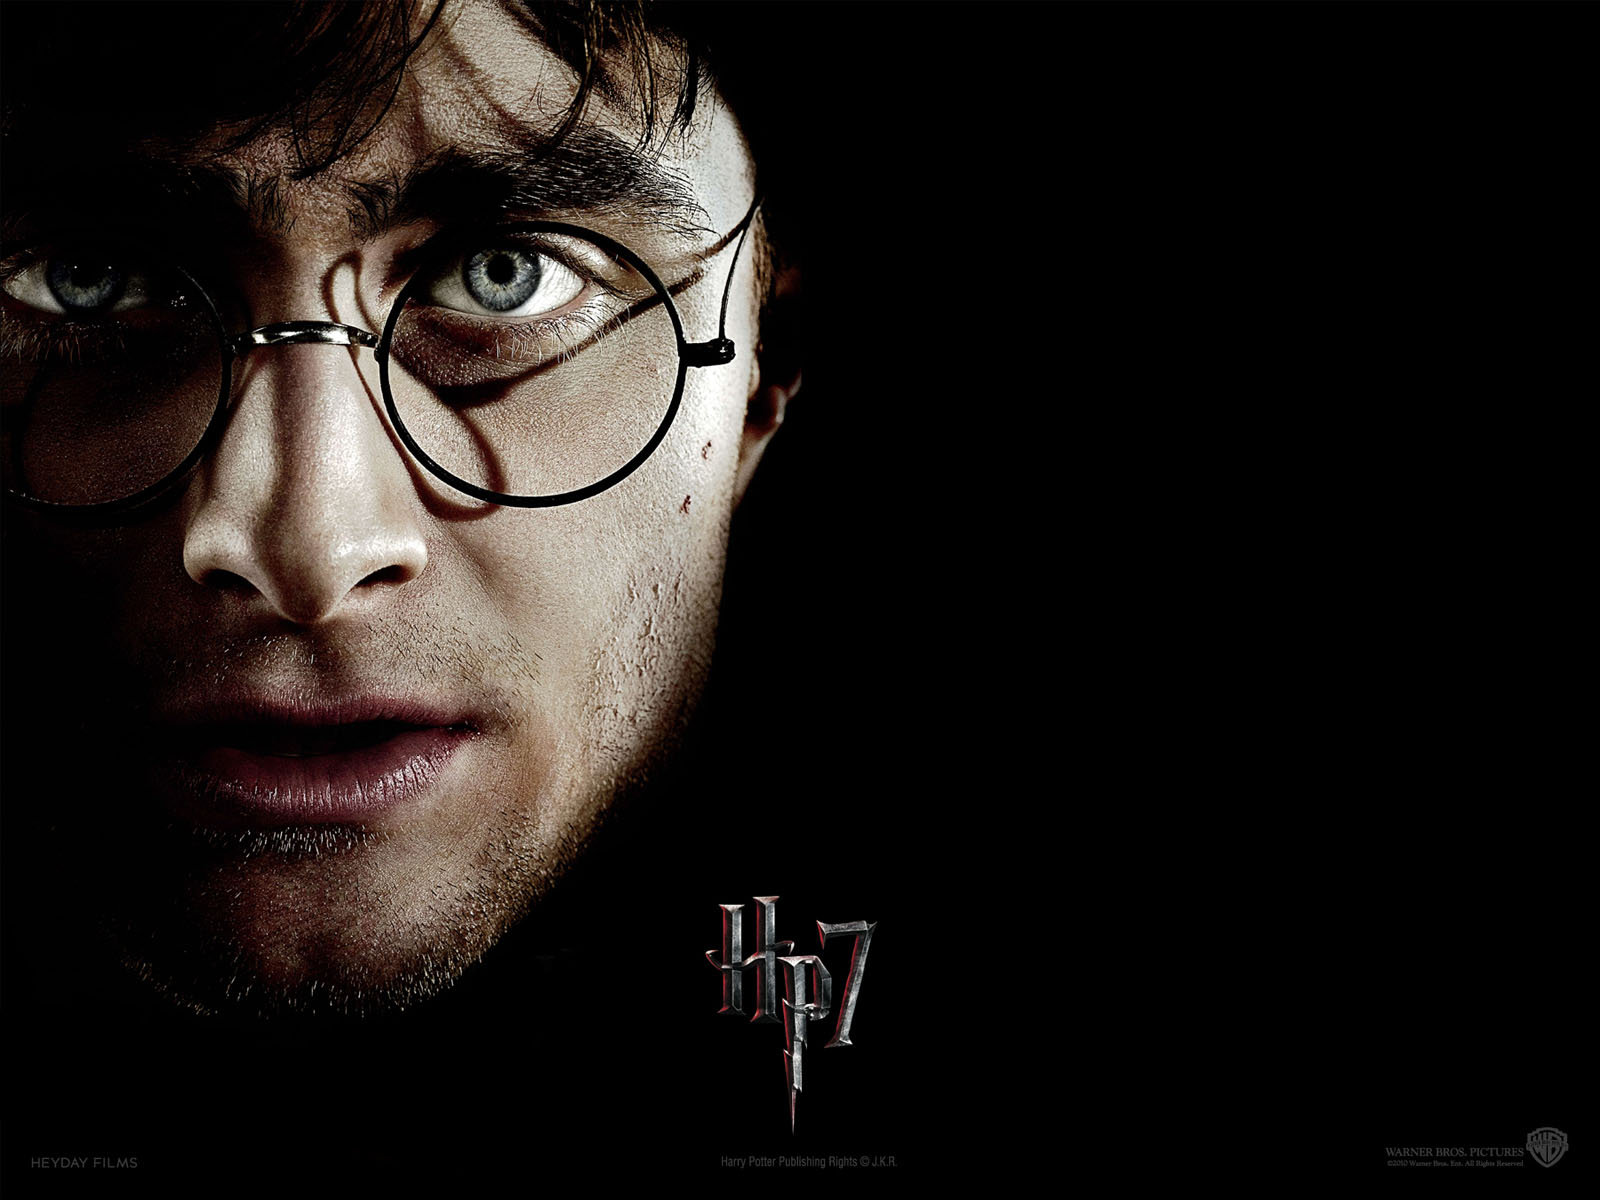 essays on harry potter and the deathly hallows Following is an informative essay example about harry potter - a fictional  of the  phoenix, hp and the prisoner of azkaban, and hp and the deathly hallows.